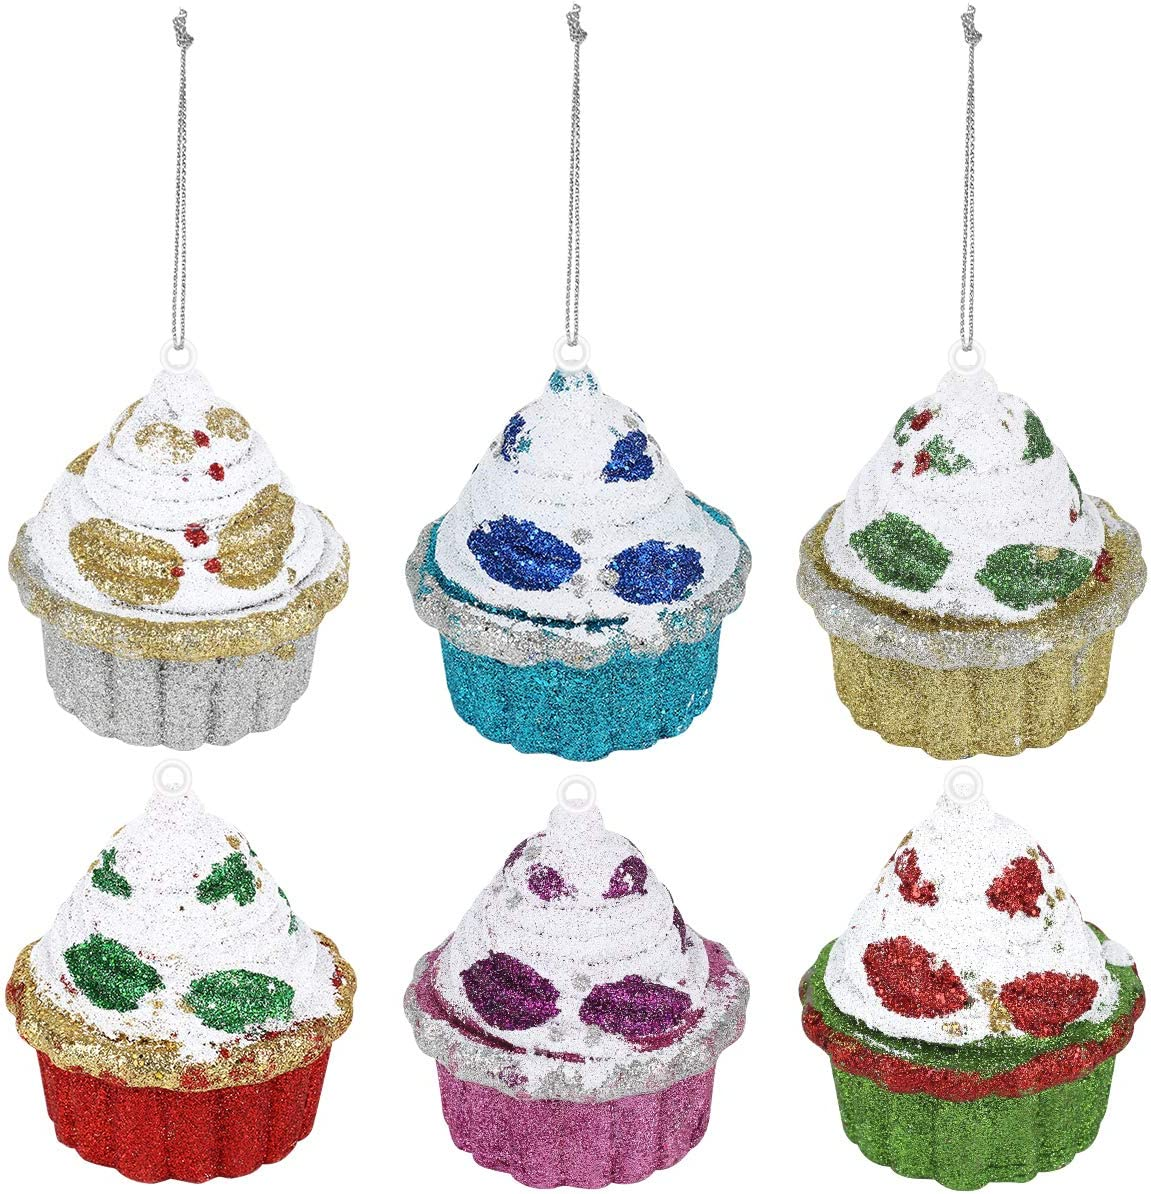 Amazon Com 6 Pieces Christmas Cupcake Ornaments 4 Inches Large Christmas Decorations Tree Balls Glitter Christmas Tree Decor For Holiday Wedding Party Decoration Kitchen Dining